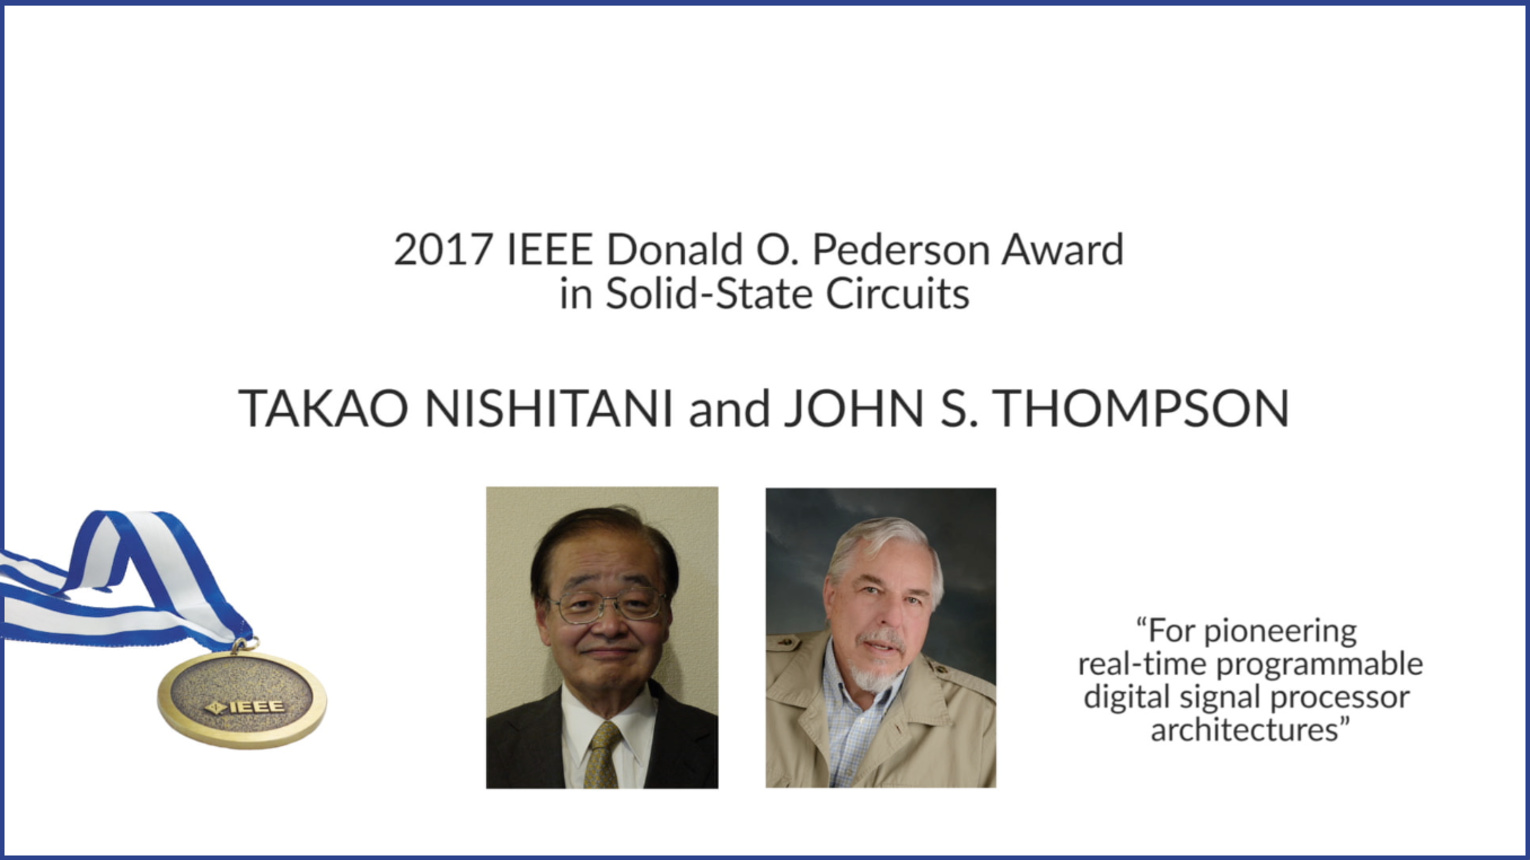 2017 IEEE Donald O. Pederson Award in Solid-State Circuits: Takao Nishitani and John S. Thompson